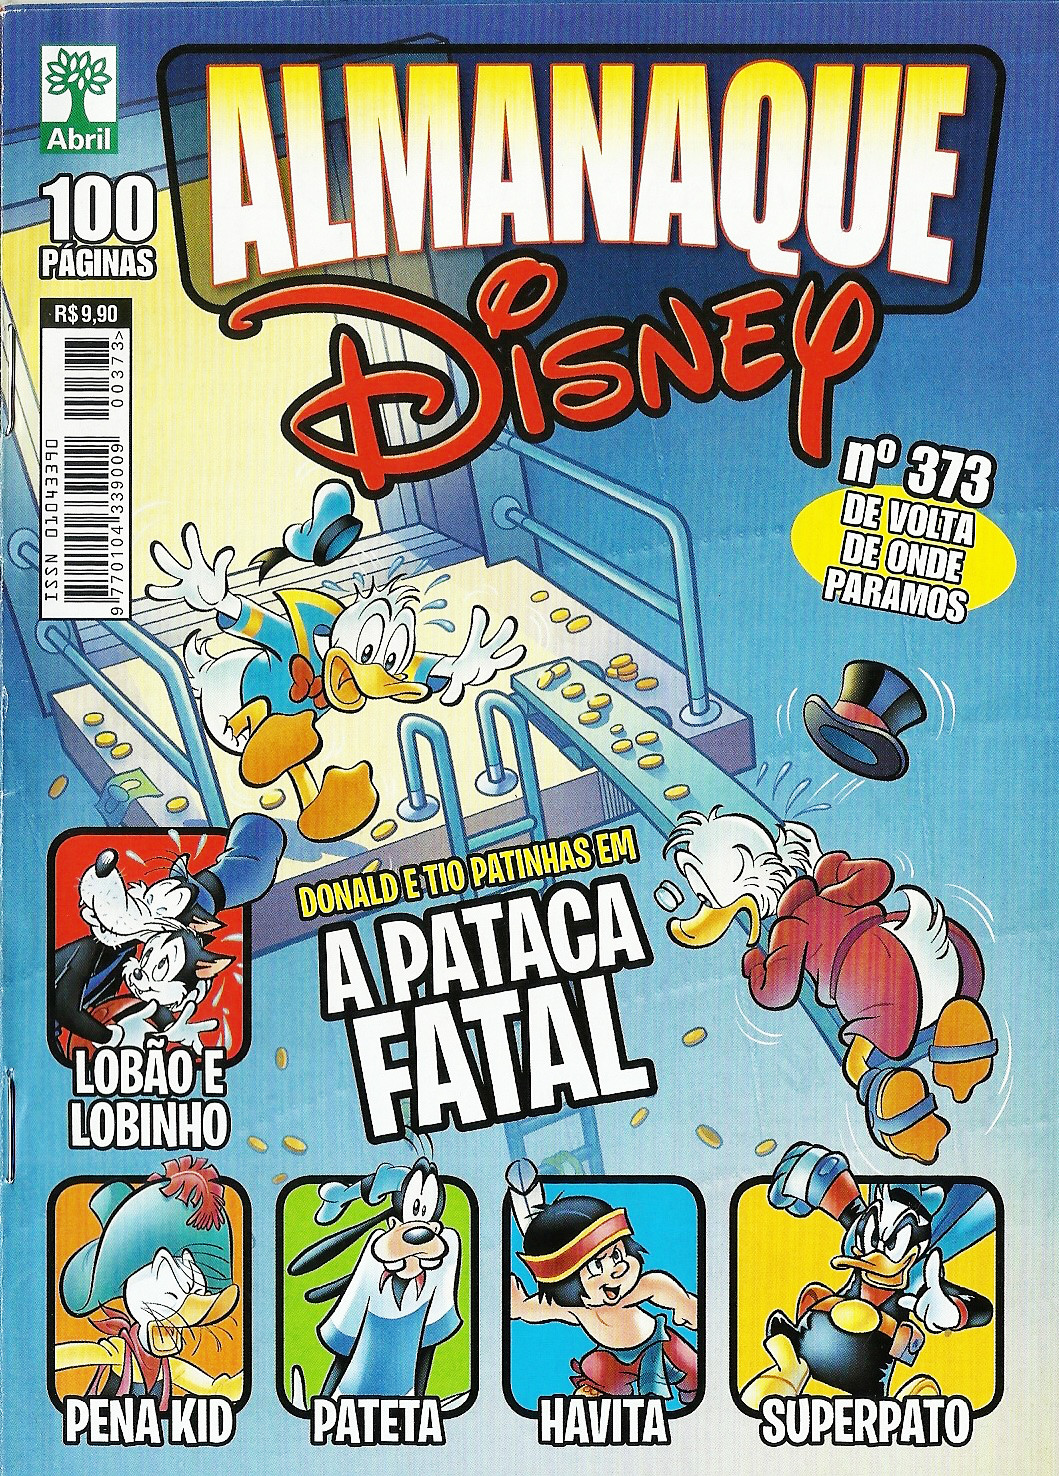 Almanaque Disney 373